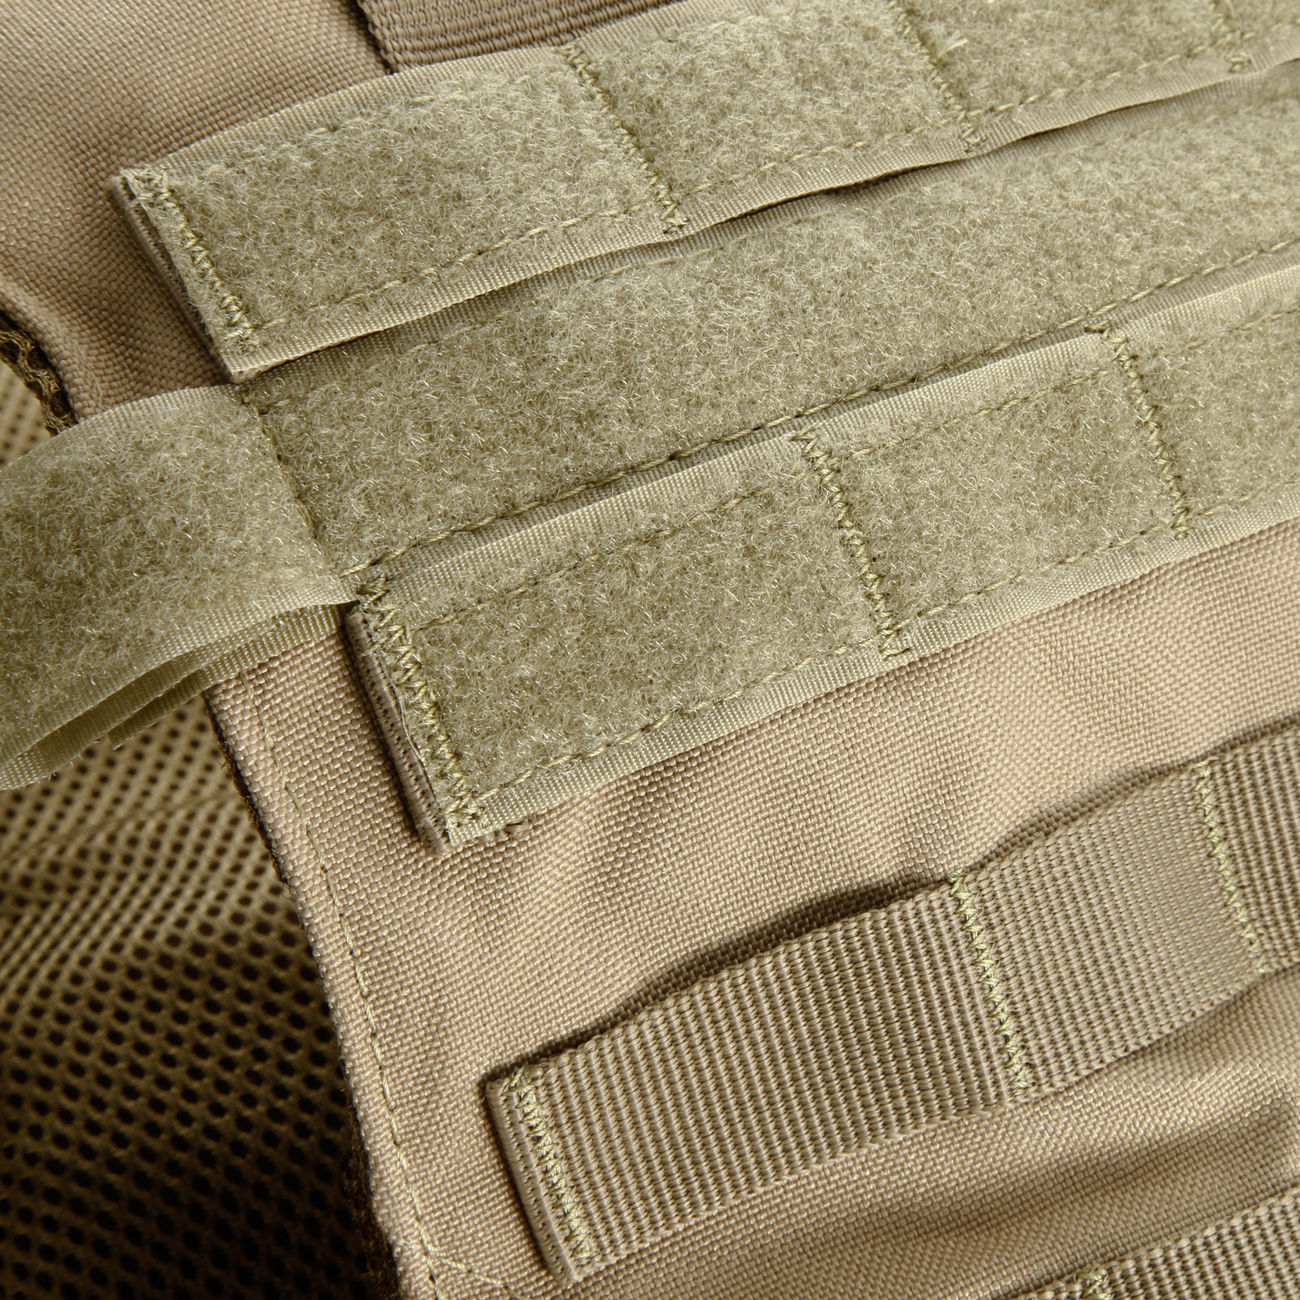 Condor Gunner Plate Carrier coyote 3